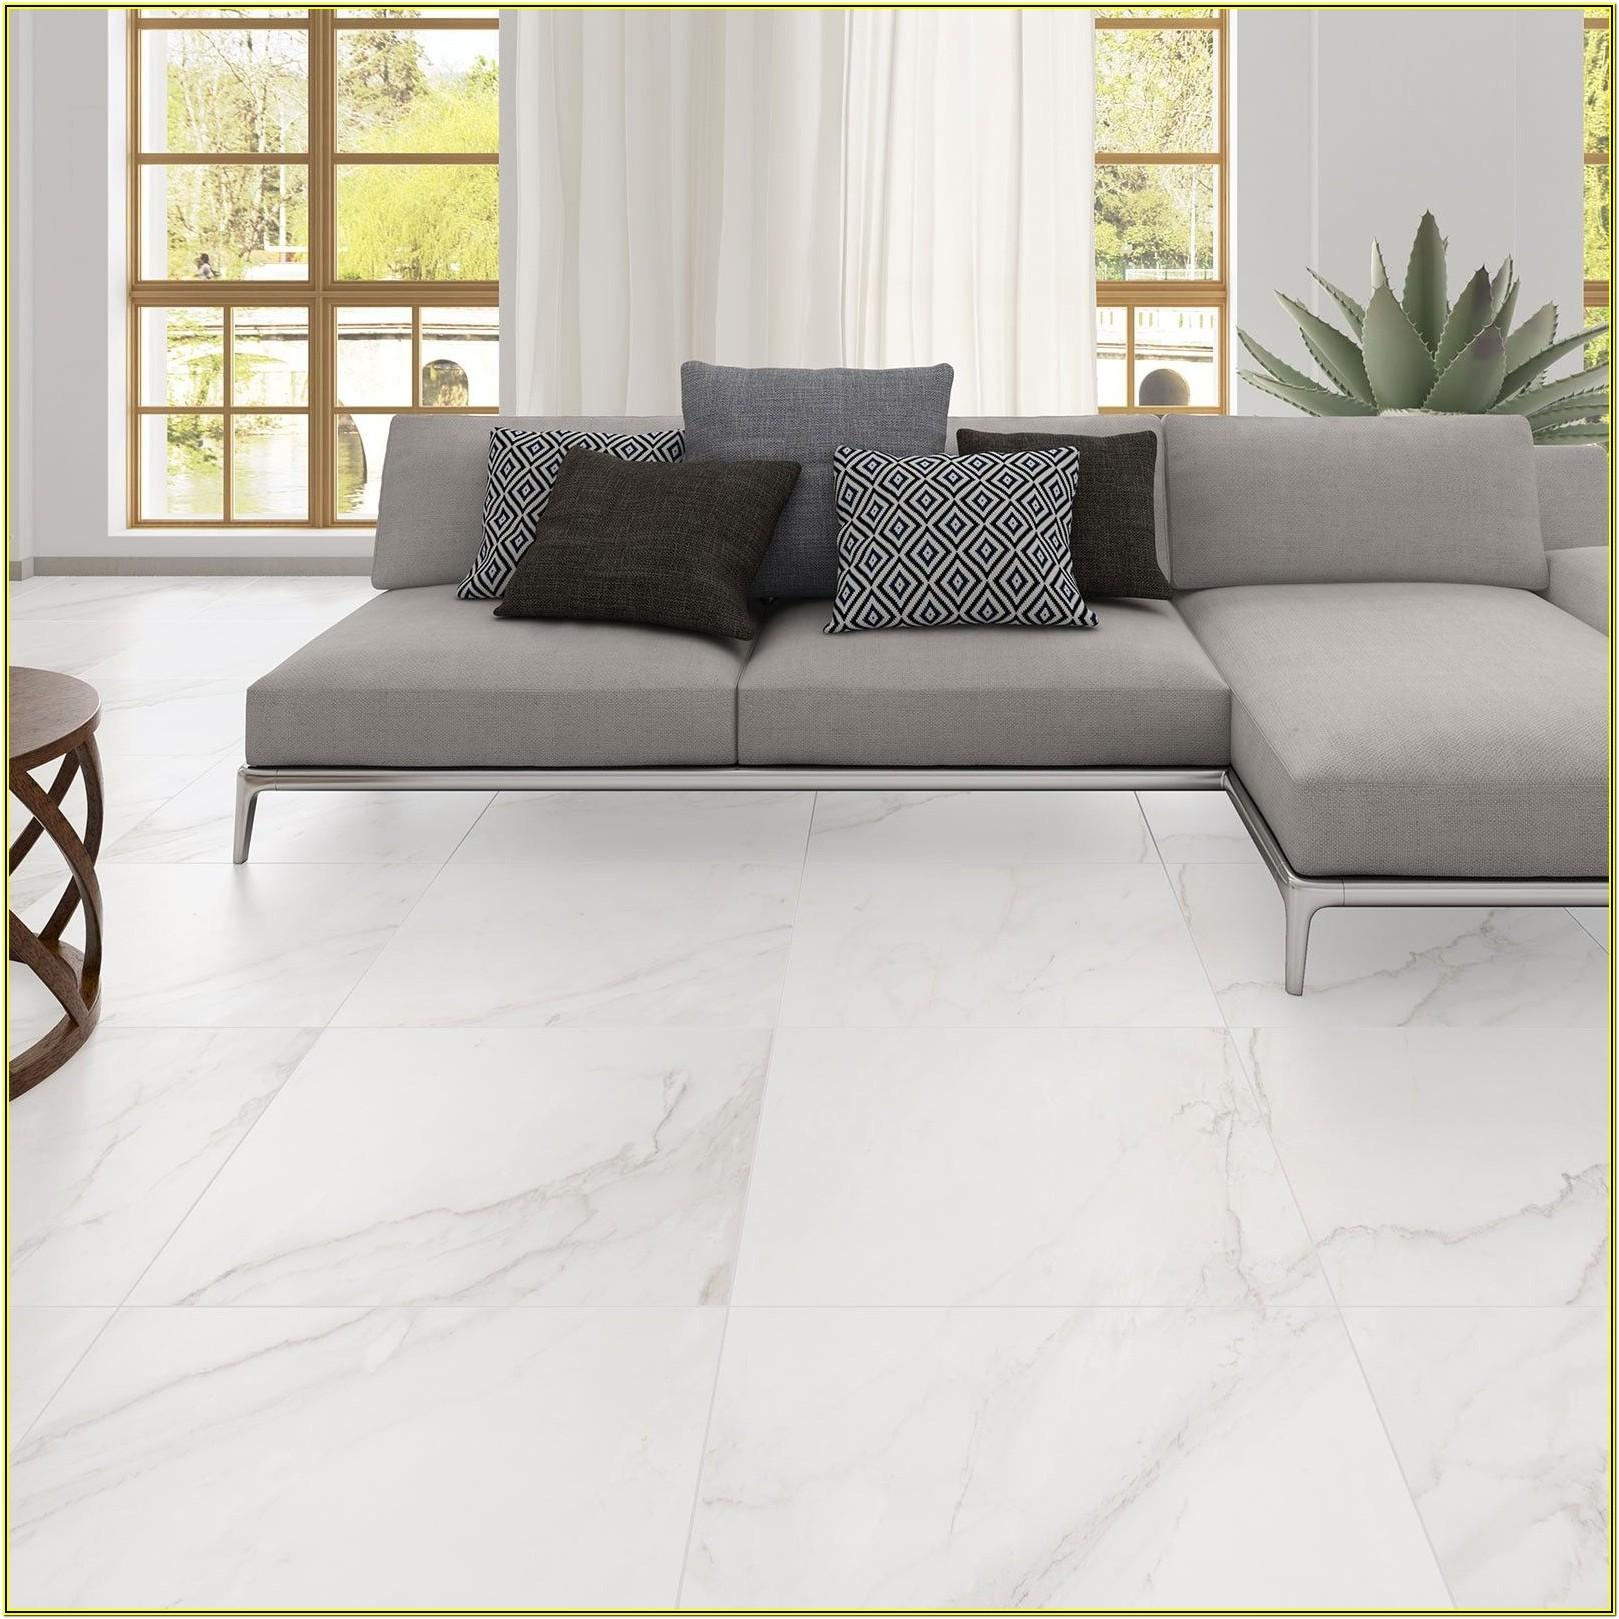 Living Room Ideas With Italian Tiling